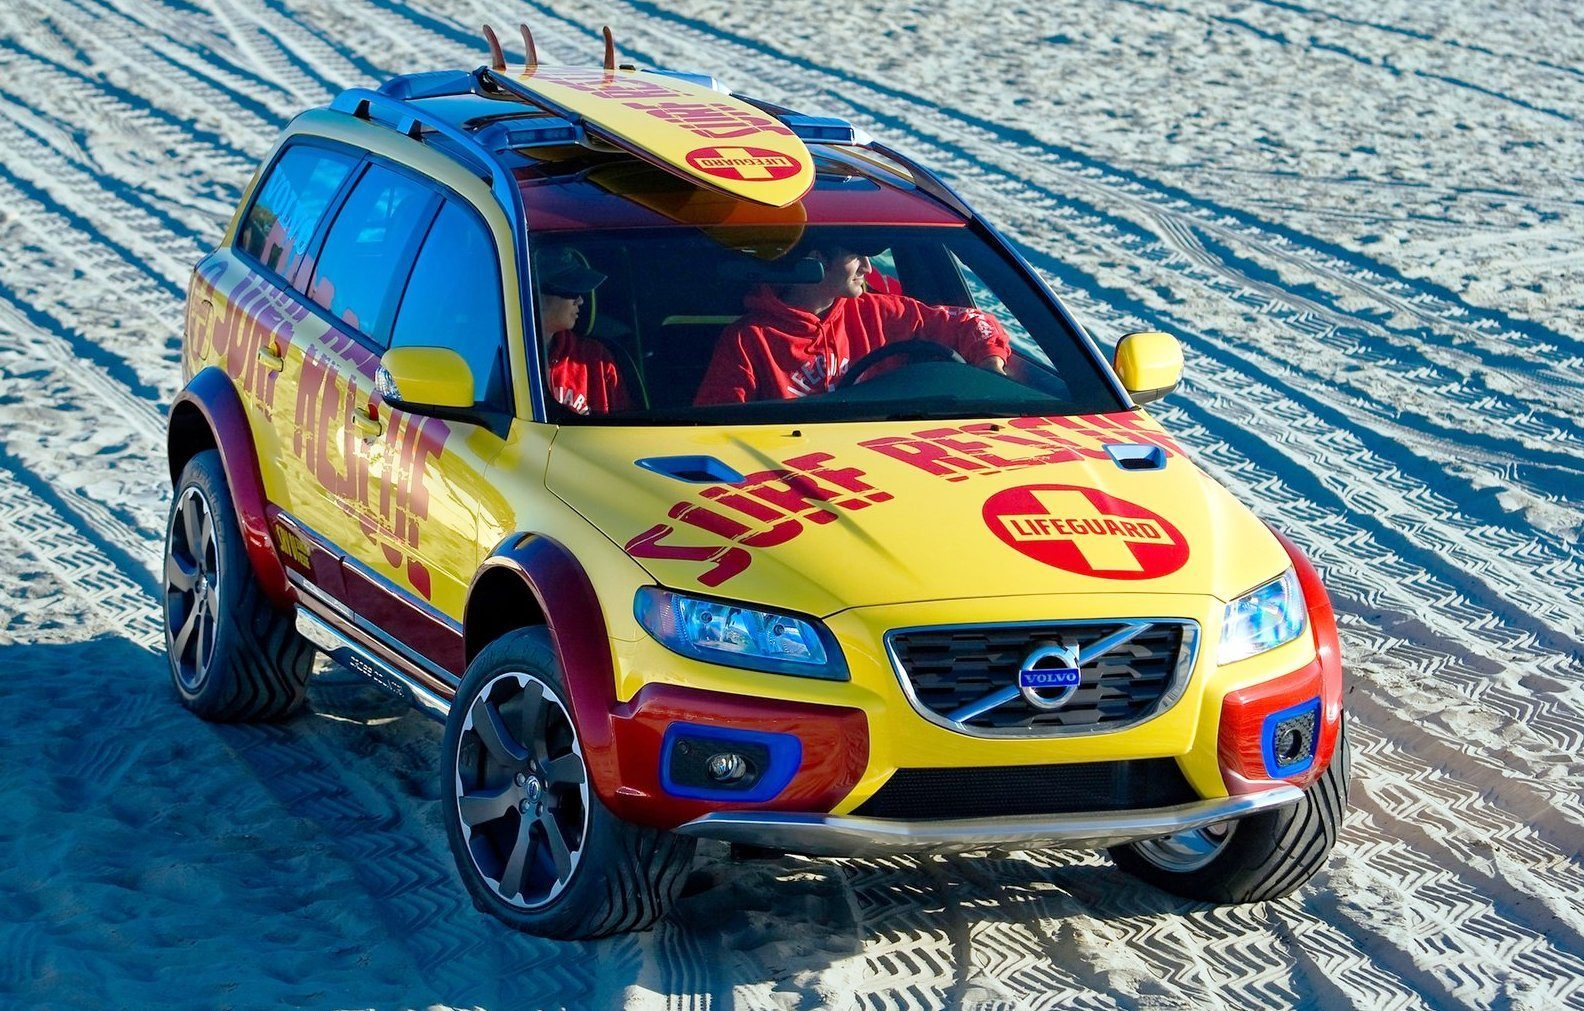 2005 Volvo XC70 AT and 2007 XC70 Surf Rescue are California Surf'n'Turf Dreams 18